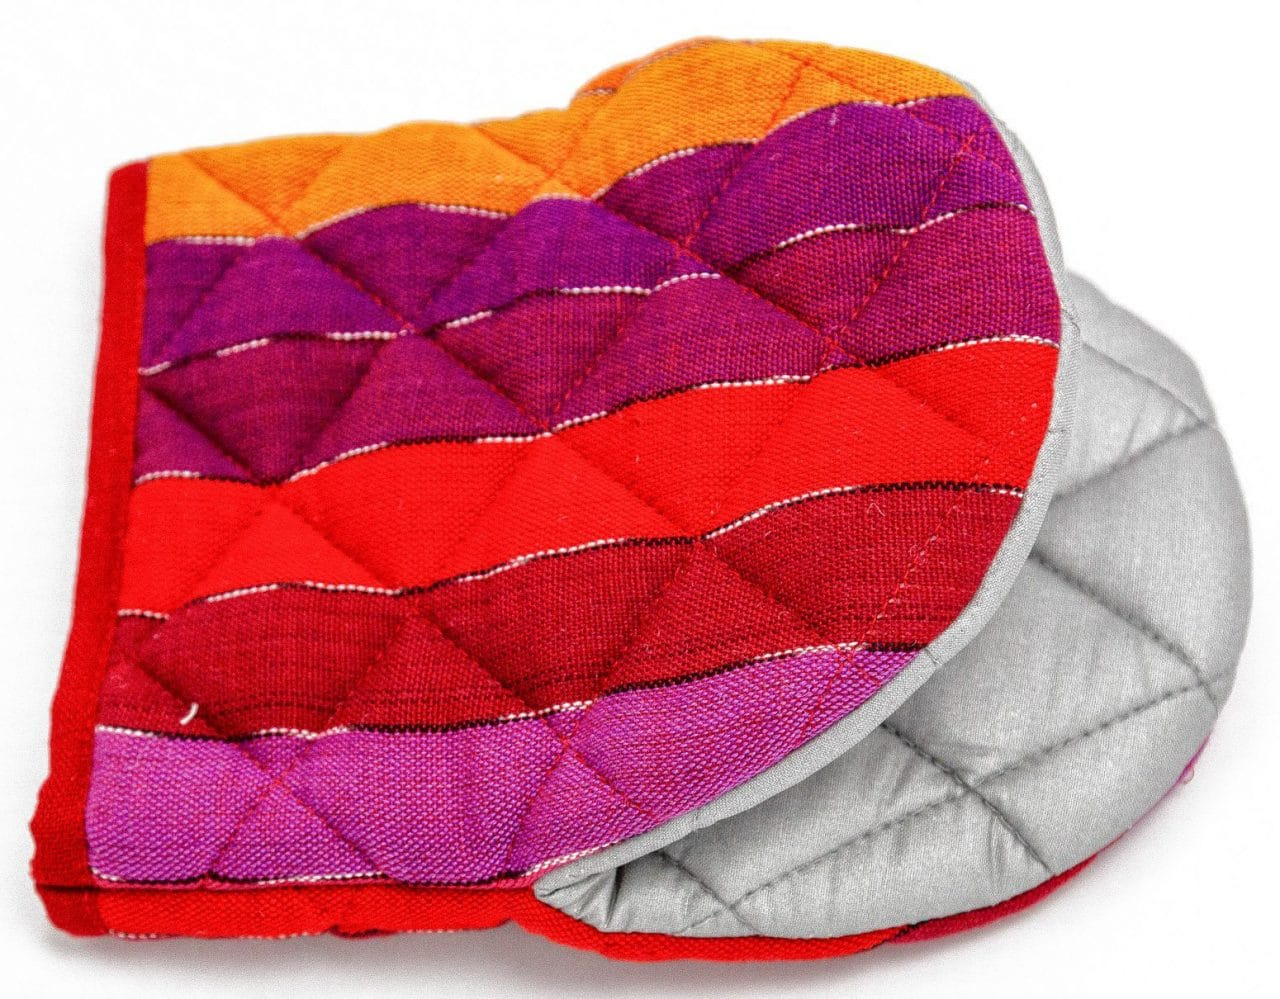 Oven Mitt - A Variety of Colors